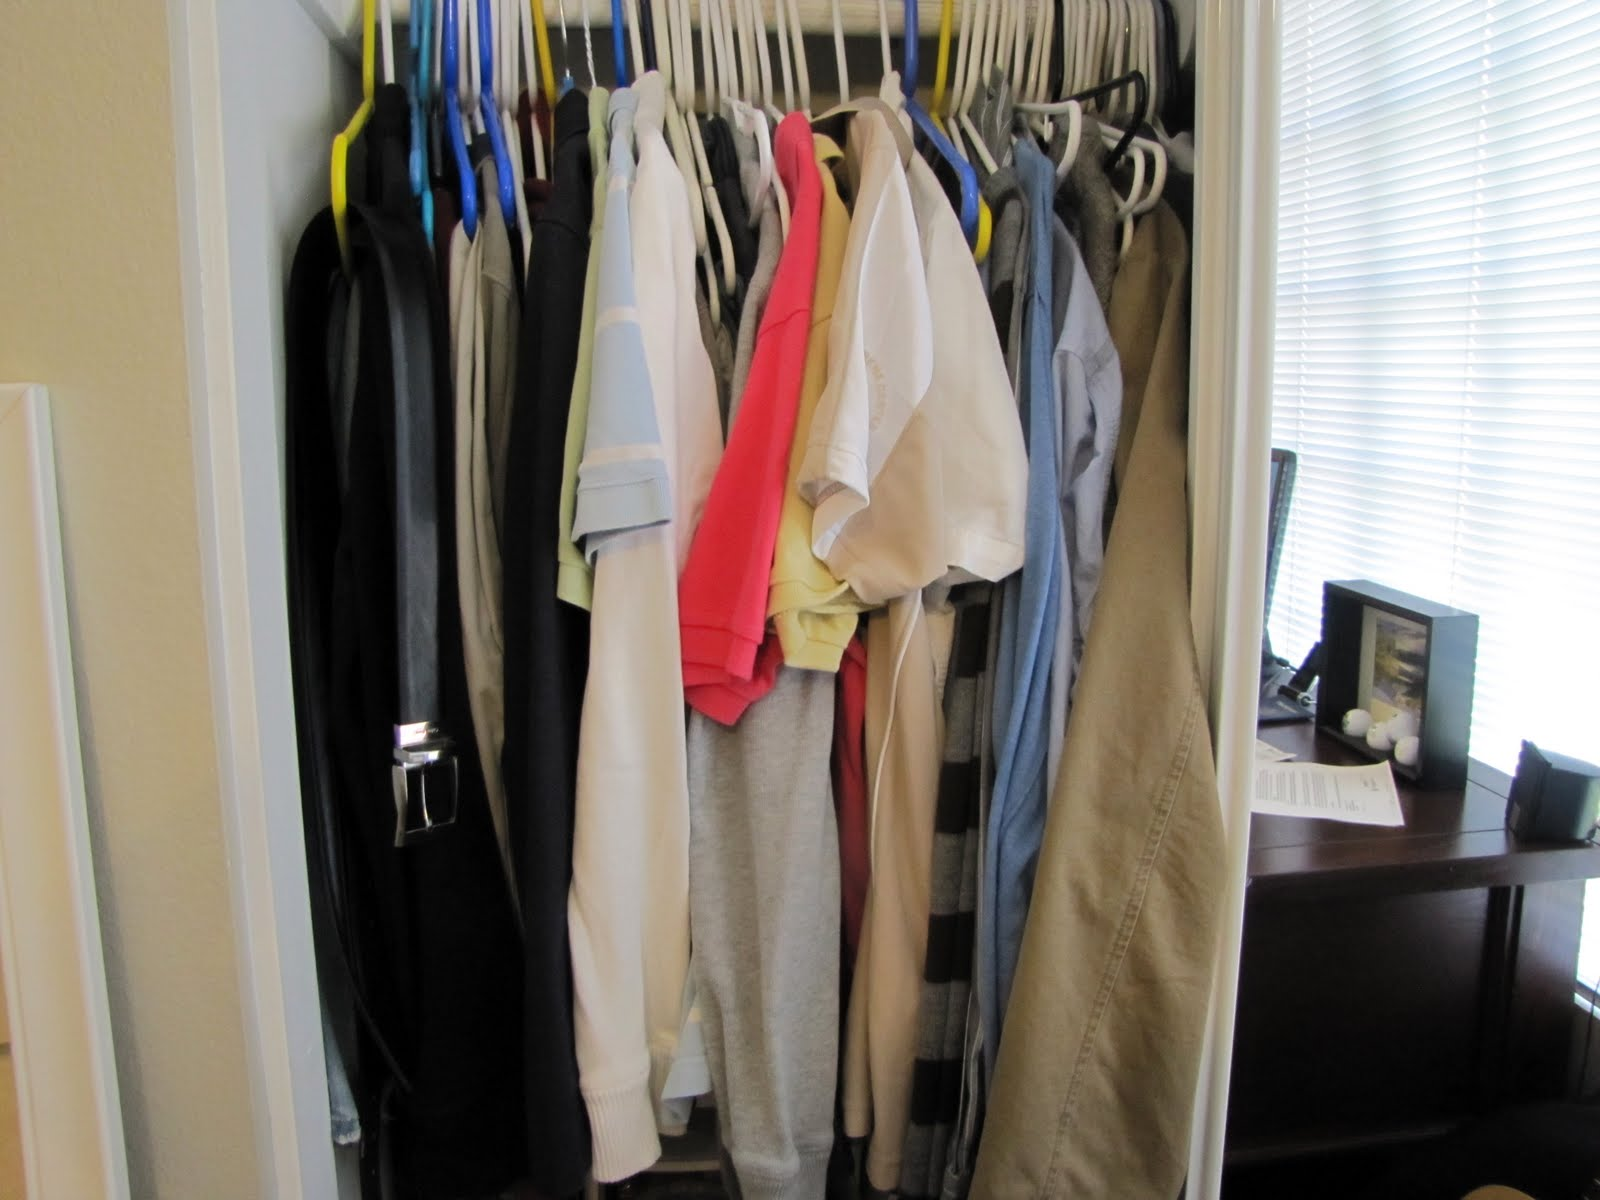 And Ashley From Little Miss Momma Shares Her Desire To Organize Her Closets  And Other Areas Of Her Home. Donu0027t We All Need To Work On Getting Some Area  Of ...